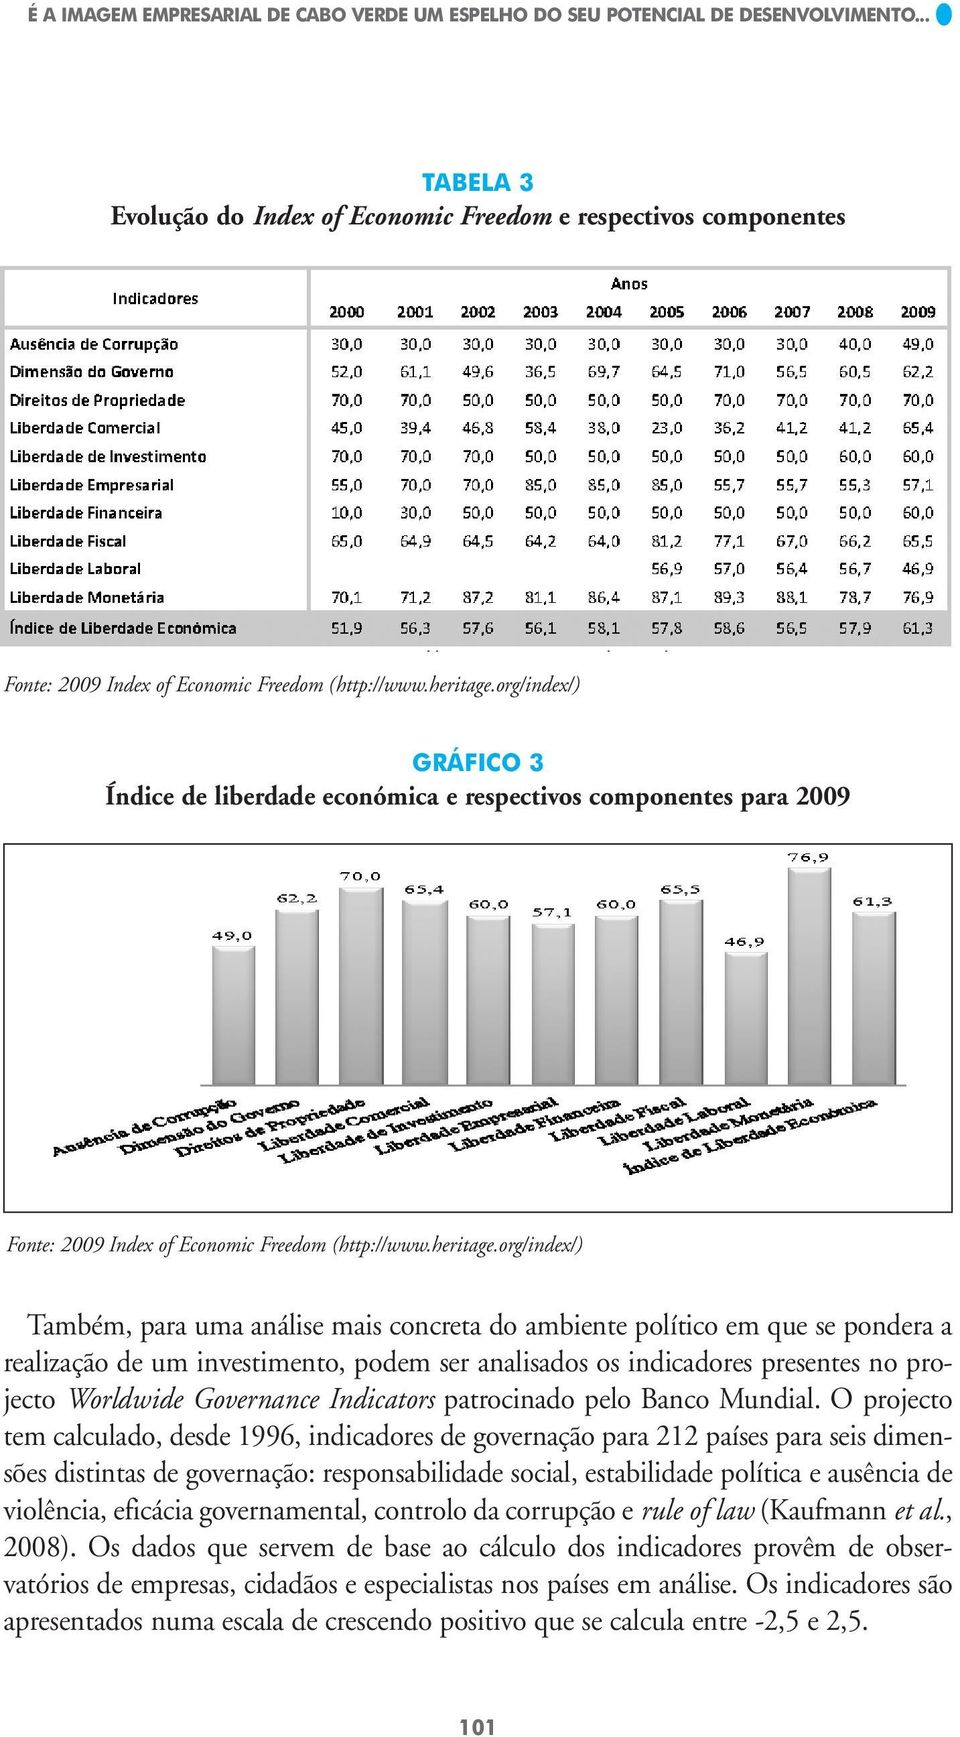 org/index/) GRÁFICO 3 Índice de liberdade económica e respectivos componentes para 2009 Fonte: 2009 Index of Economic Freedom (http://www.heritage.